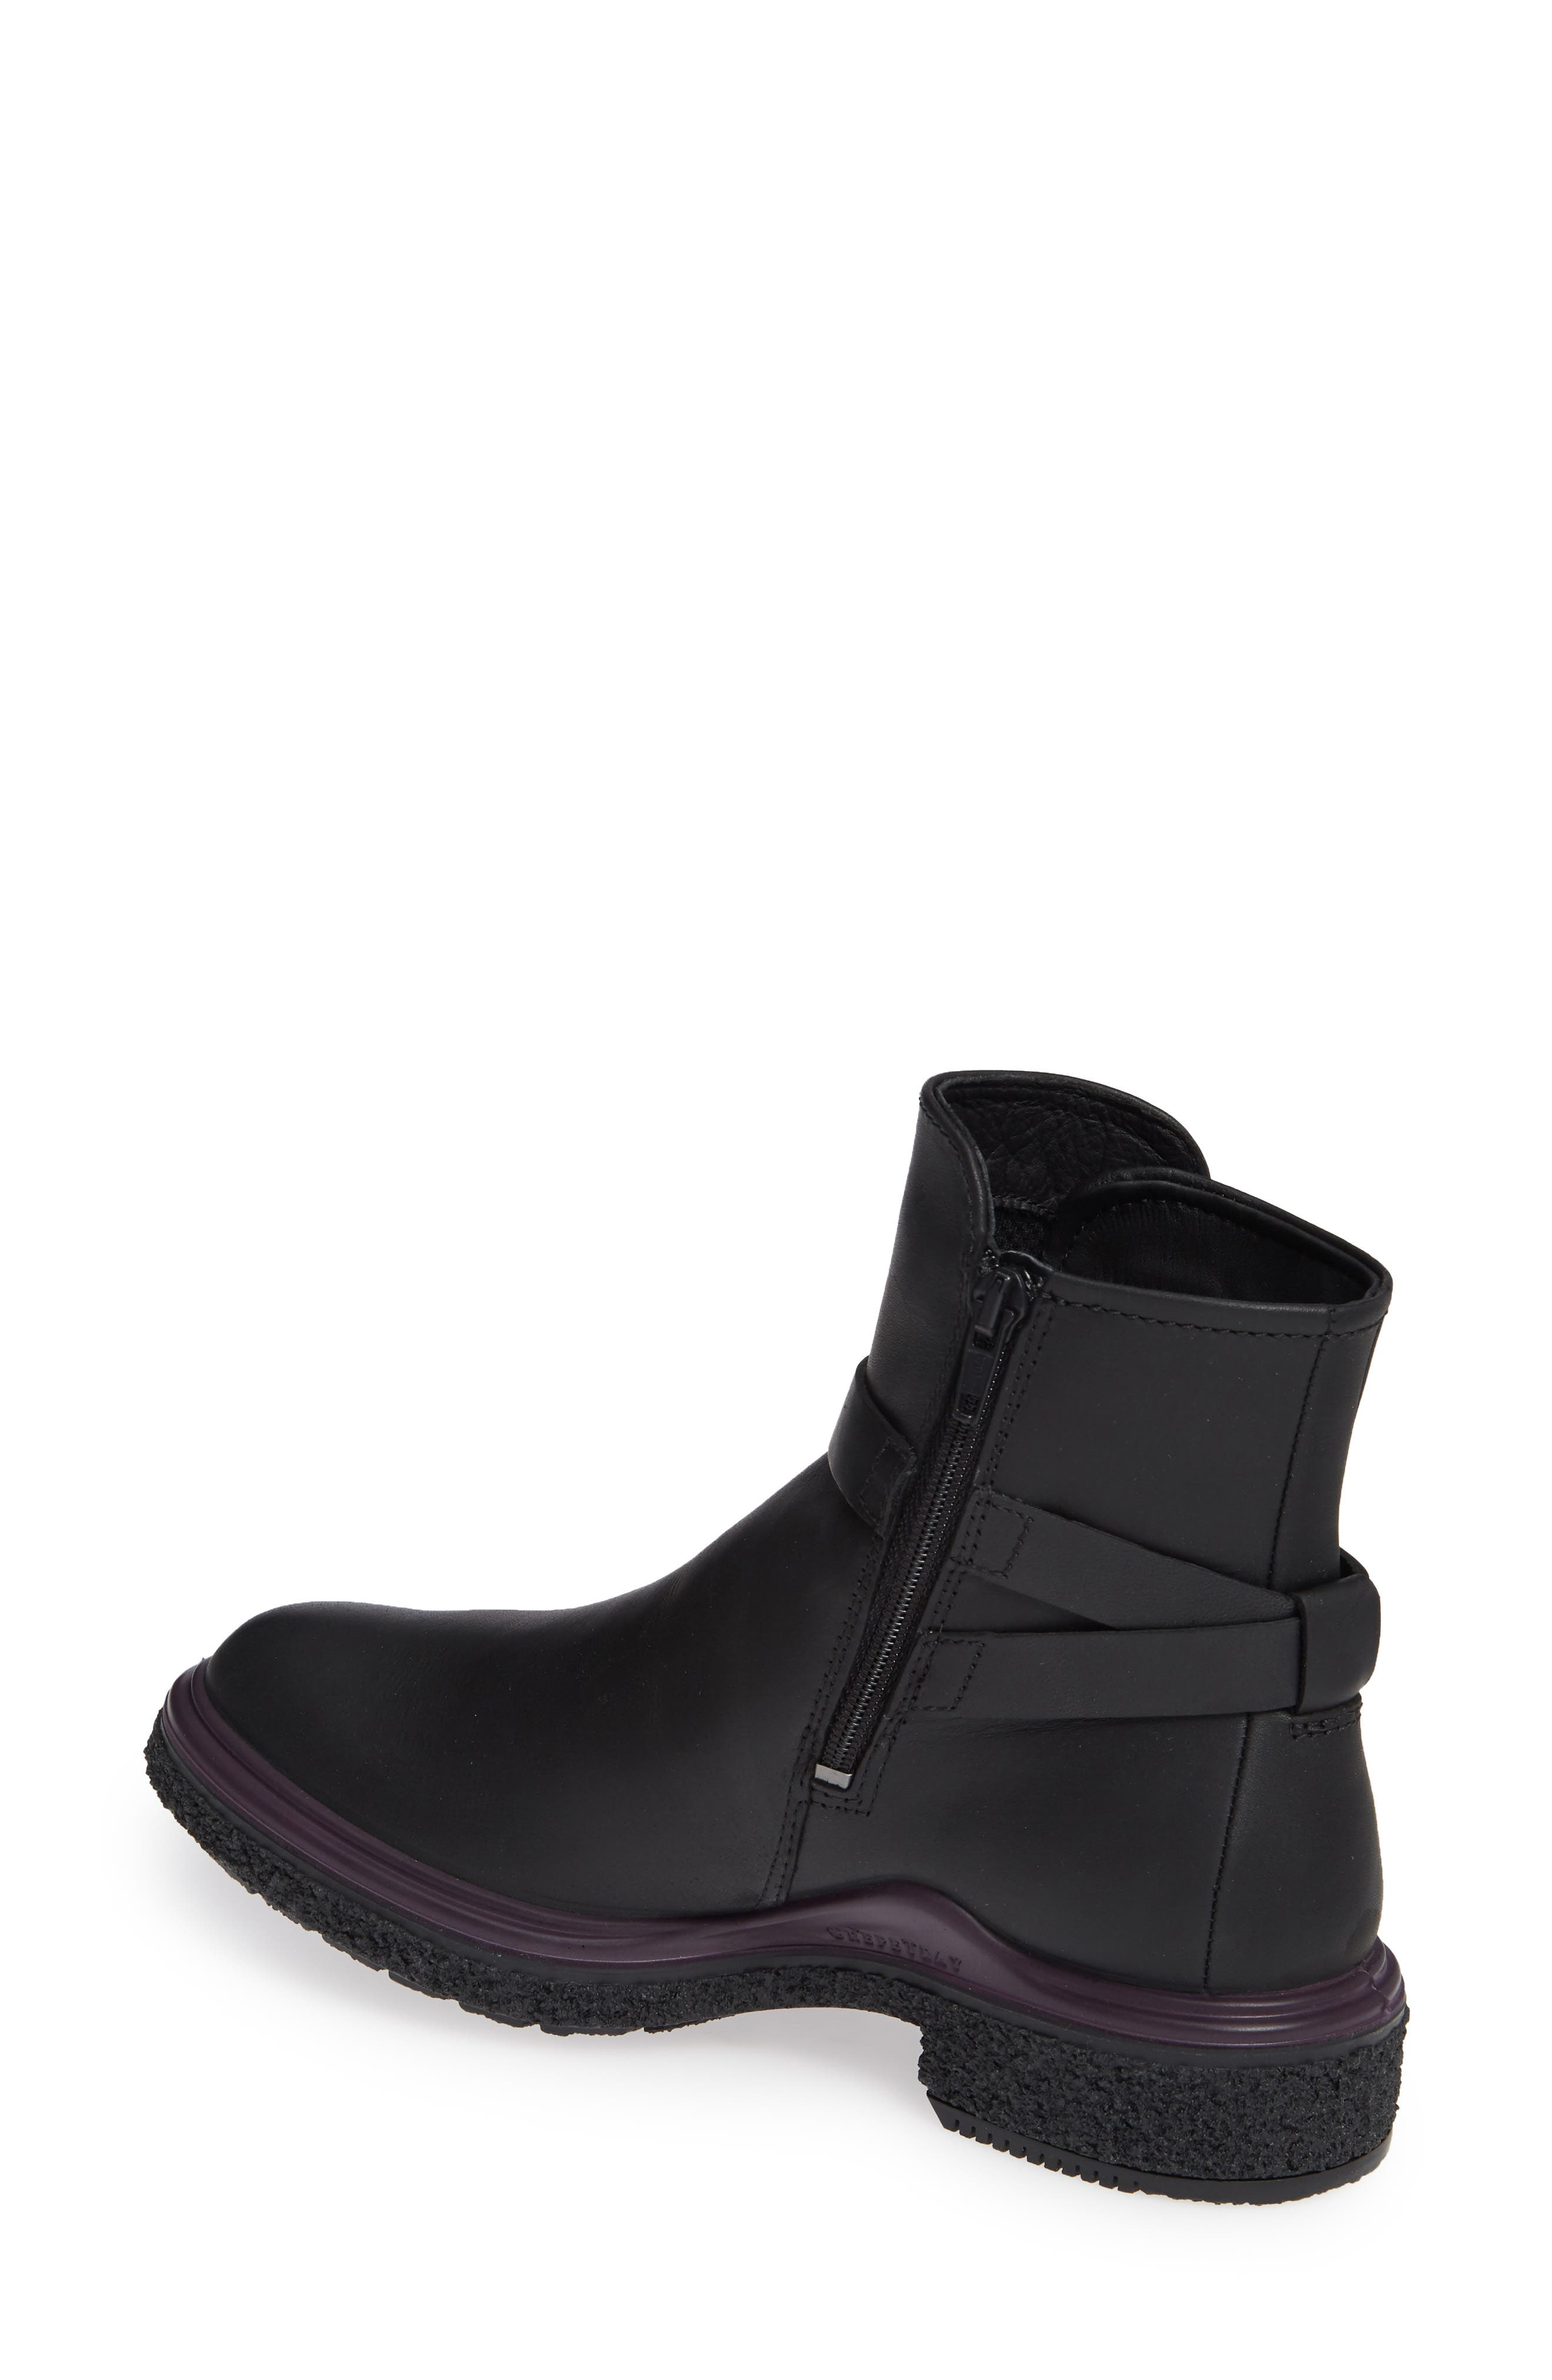 Crepetray GTX Waterproof Bootie,                             Alternate thumbnail 2, color,                             BLACK LEATHER